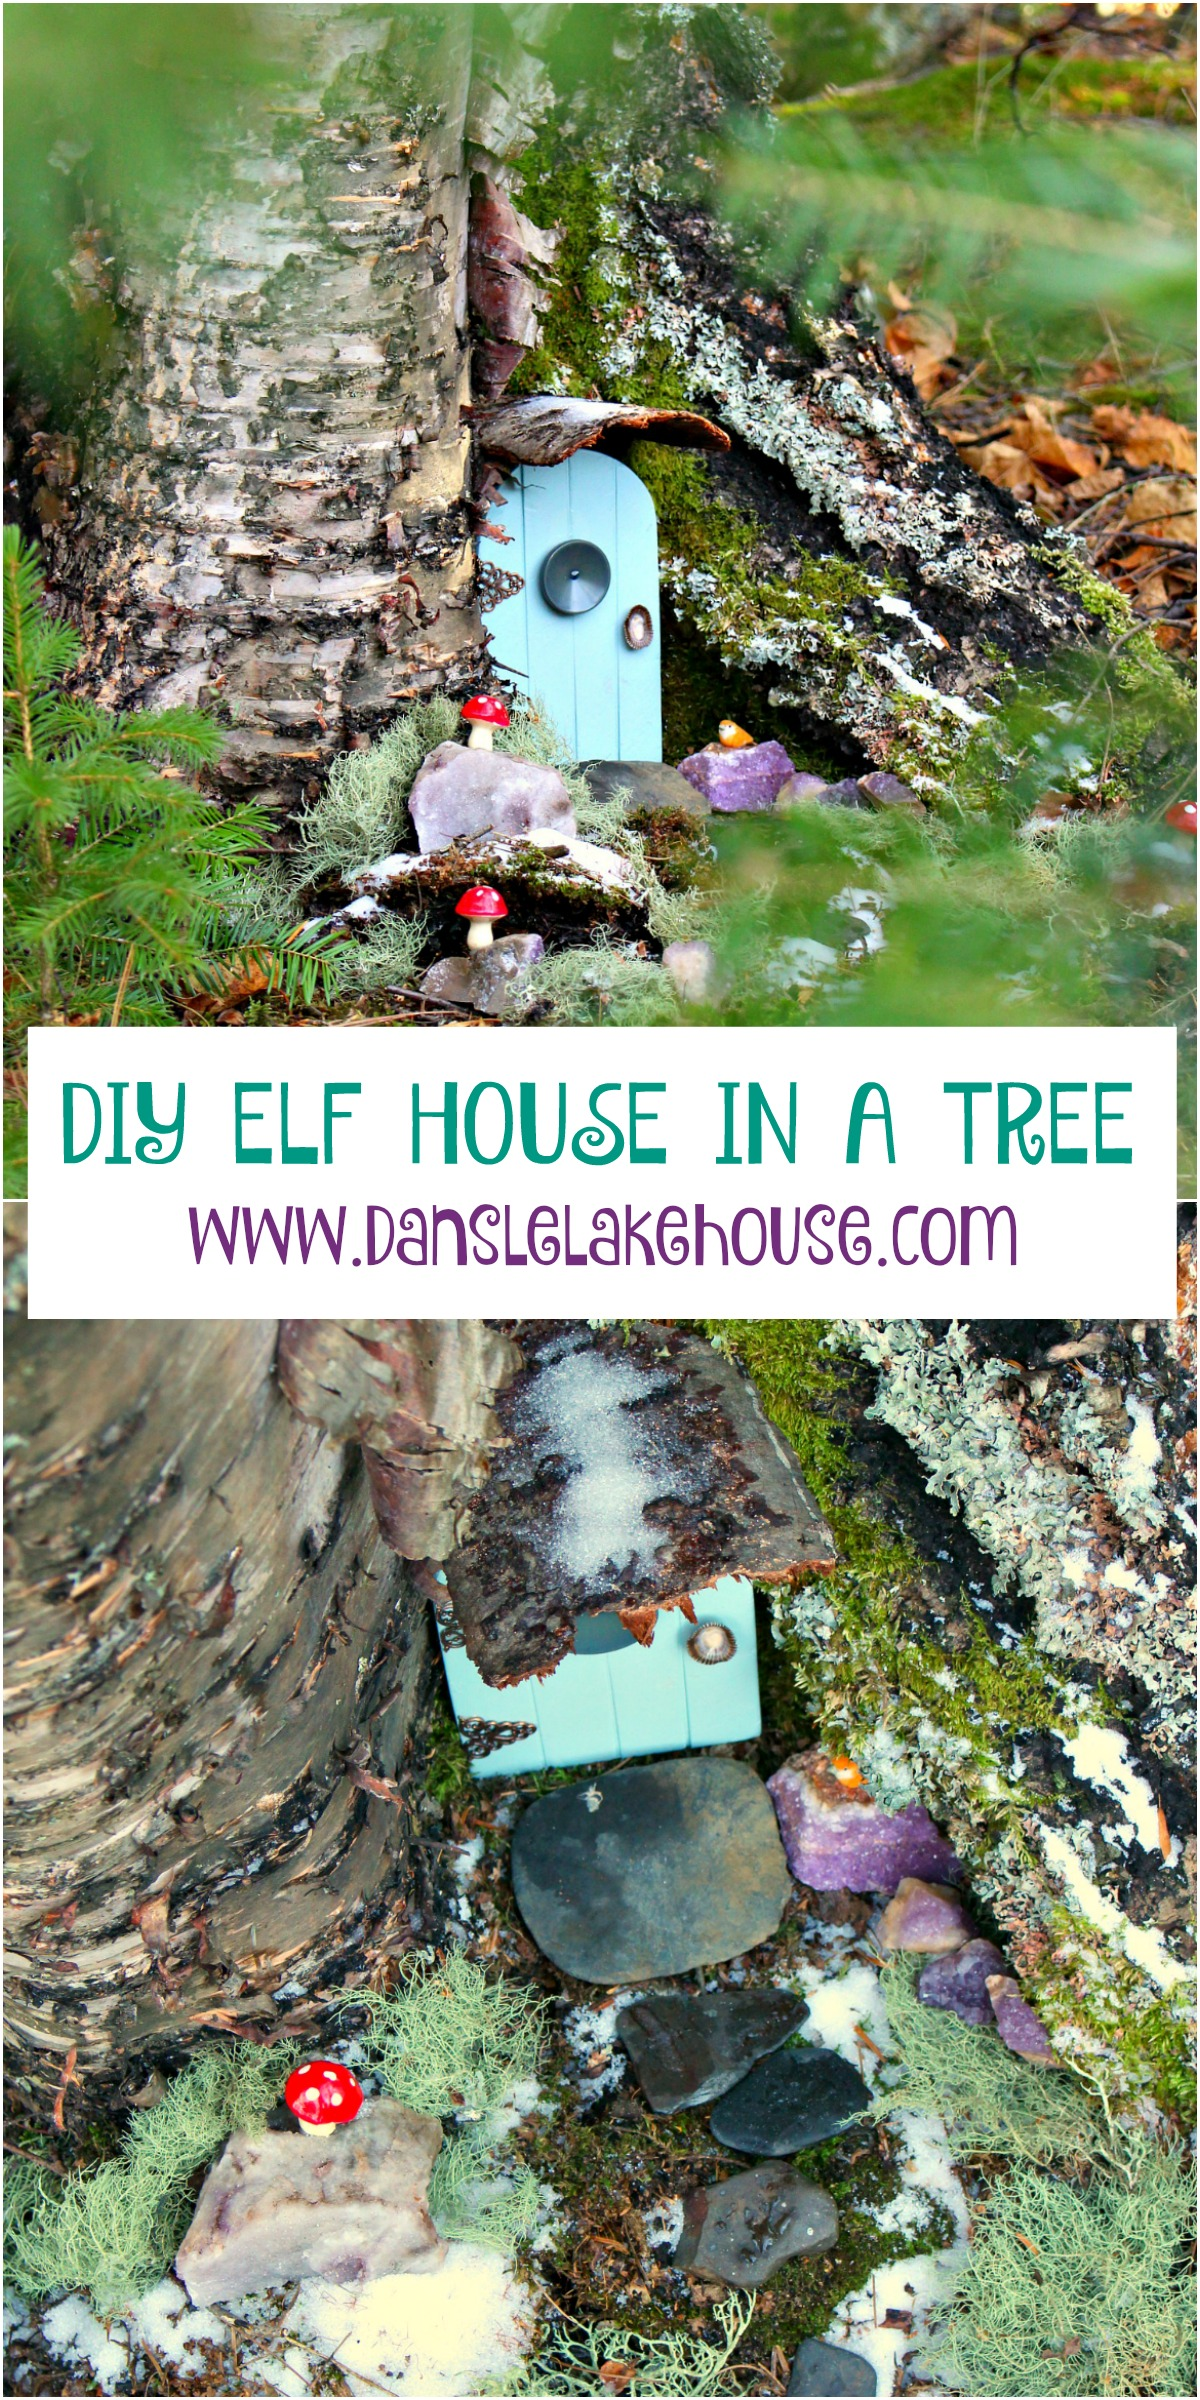 DIY Elf House in a Tree Project